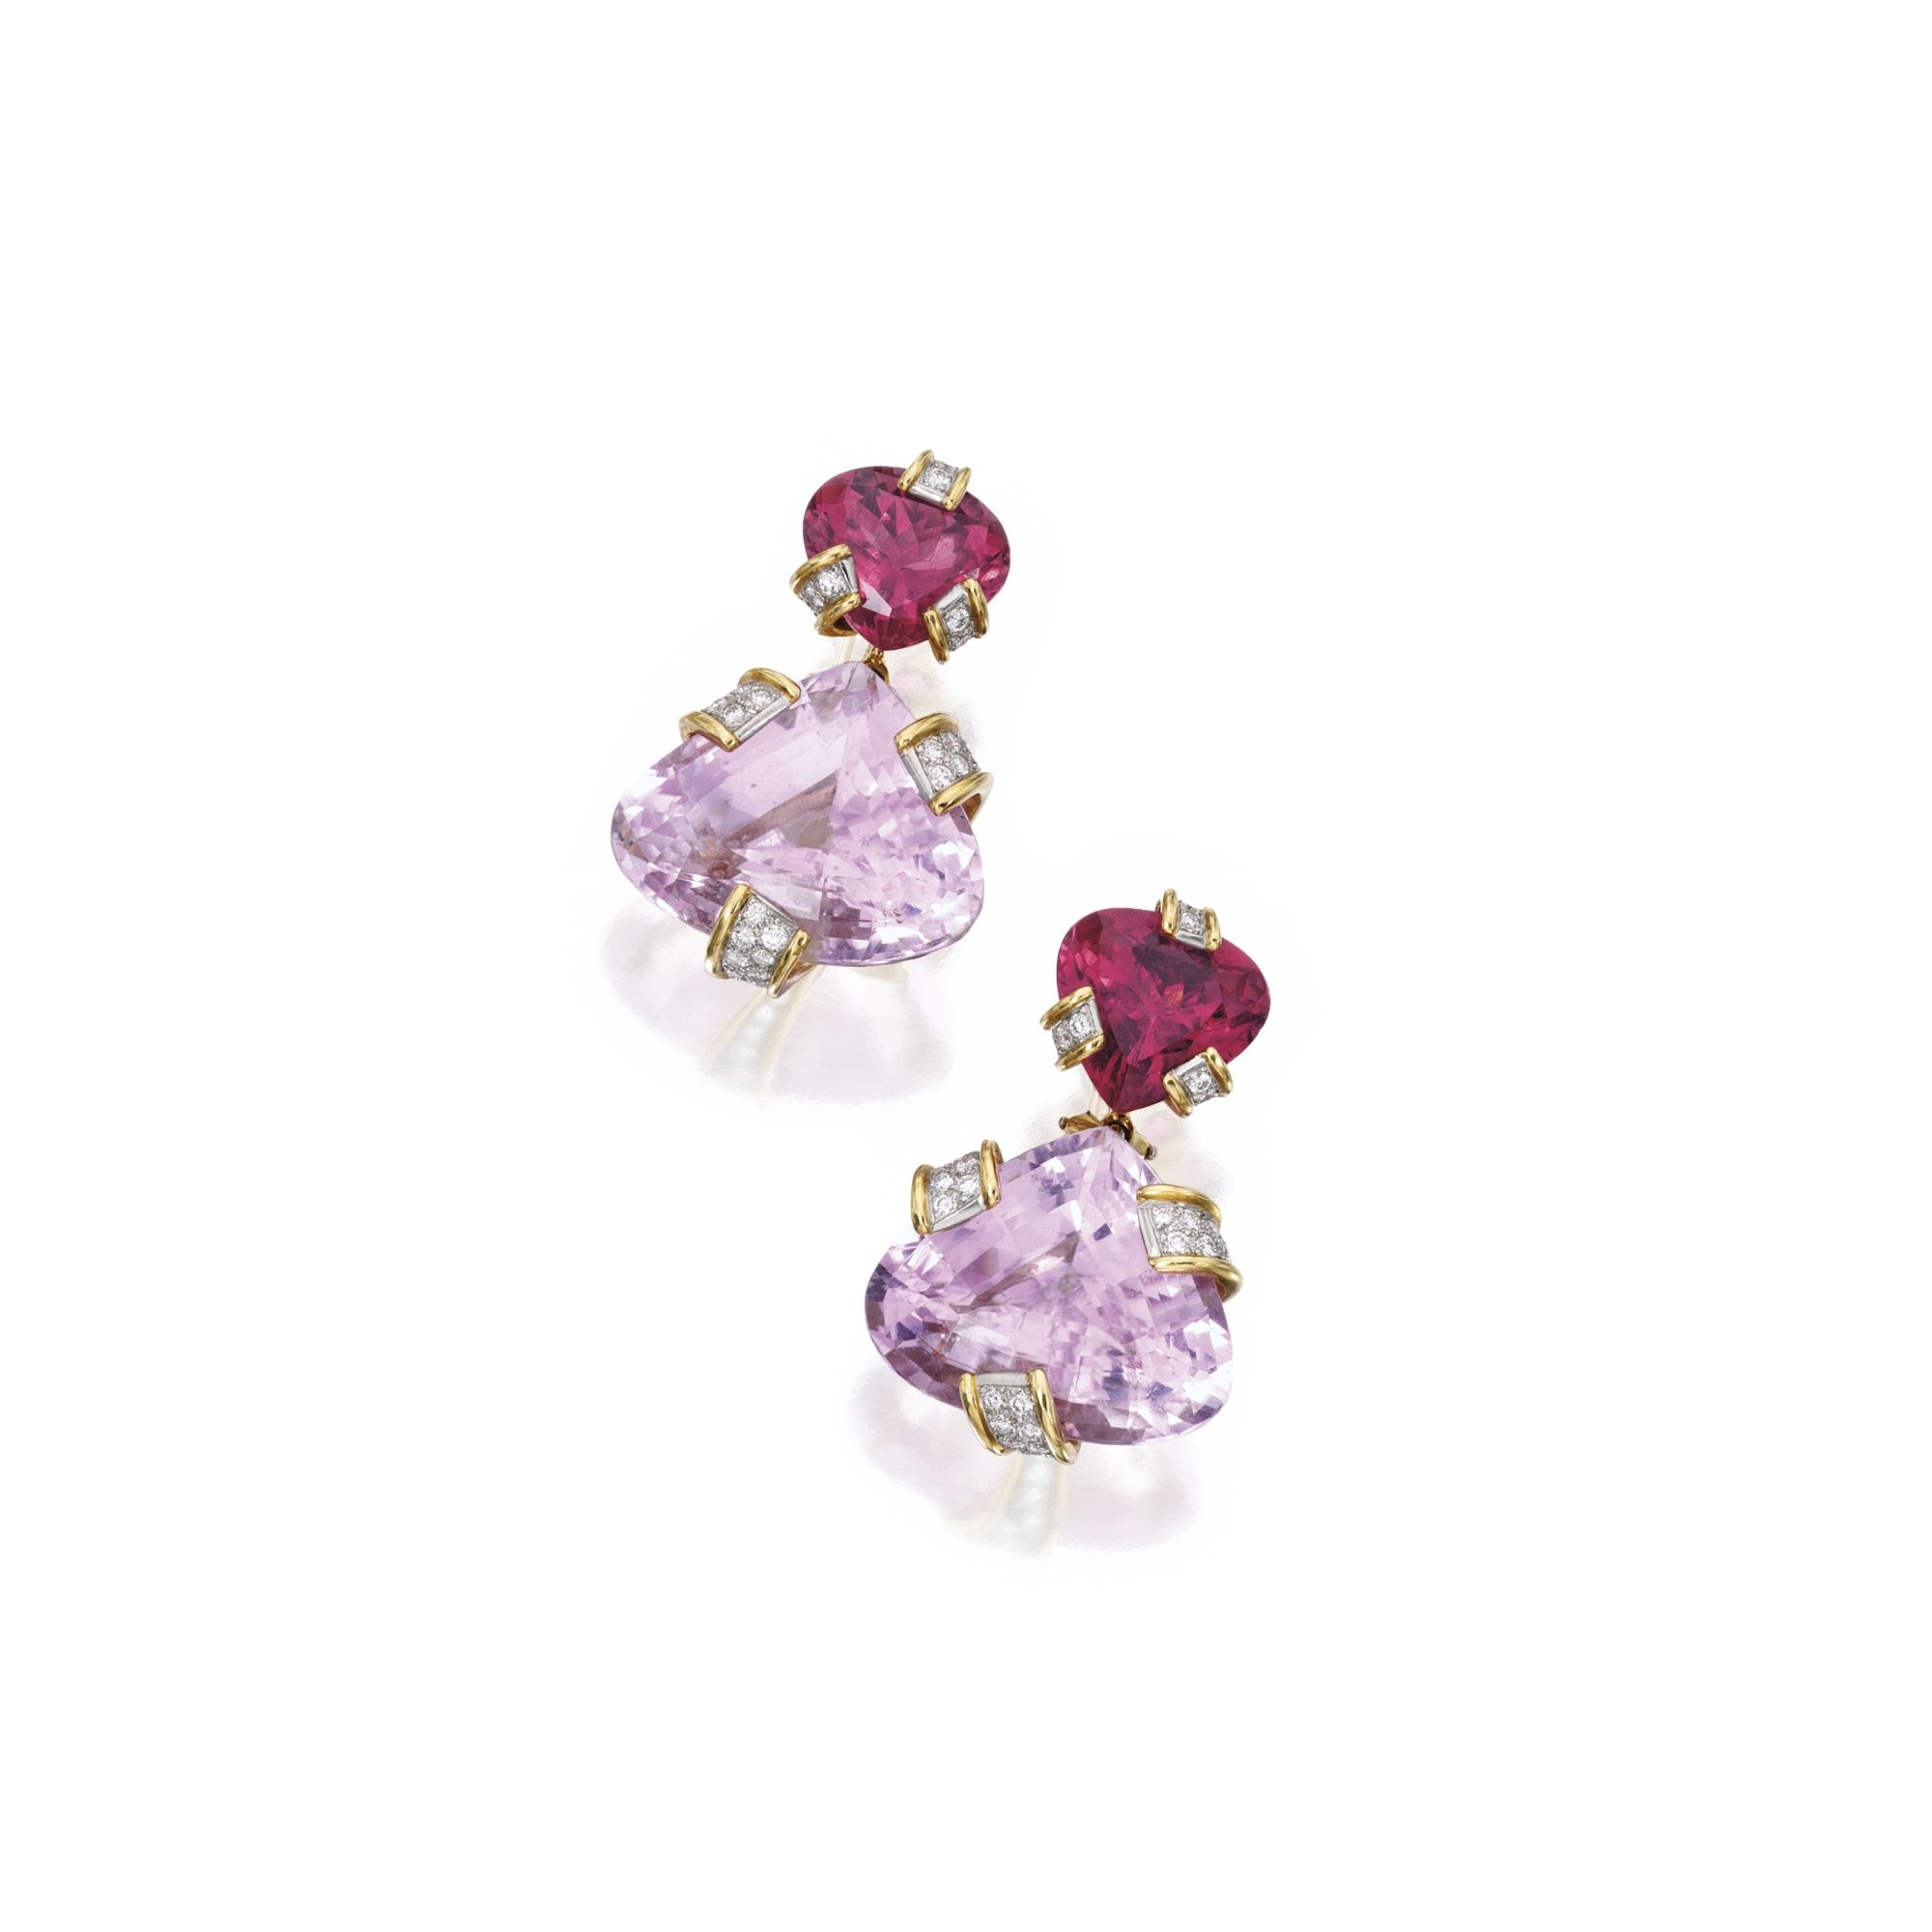 jewelry gold earrings lyst white gallery kunzite lewis in renee